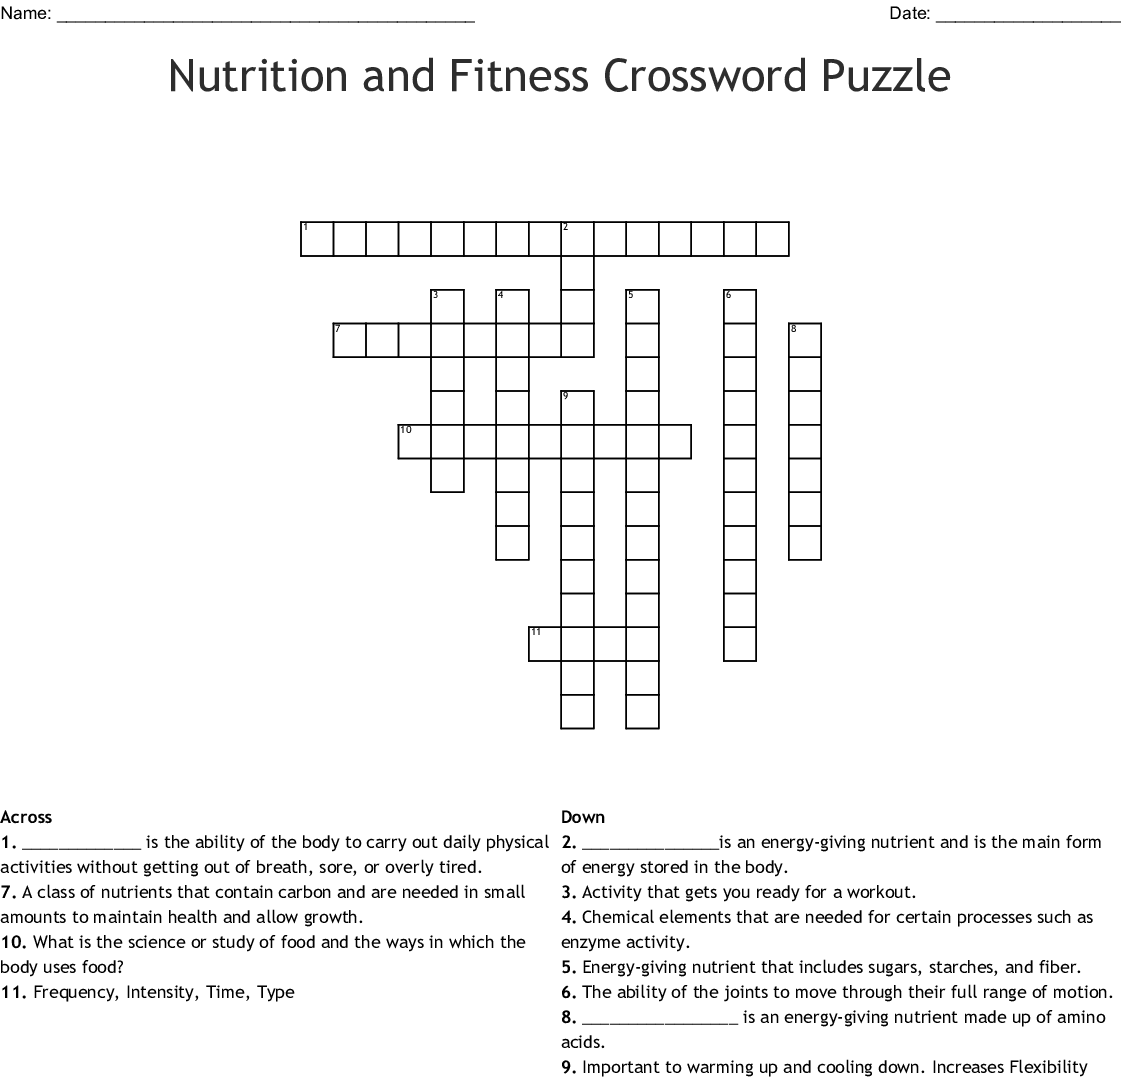 Nutrition And Fitness Crossword Puzzle Crossword